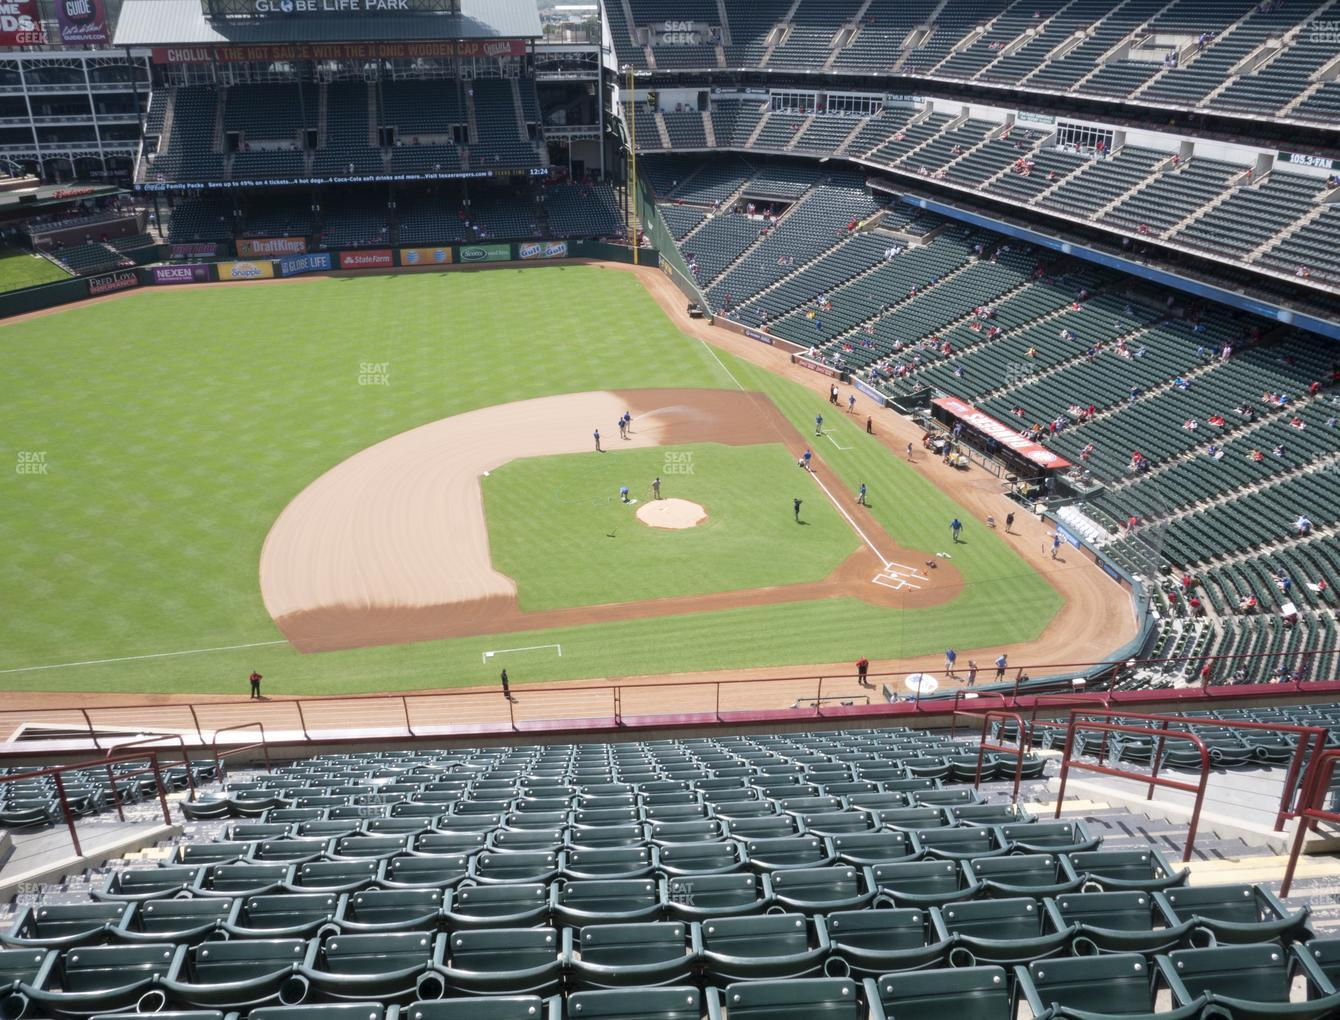 International Champions Cup at Globe Life Park Section 319 View